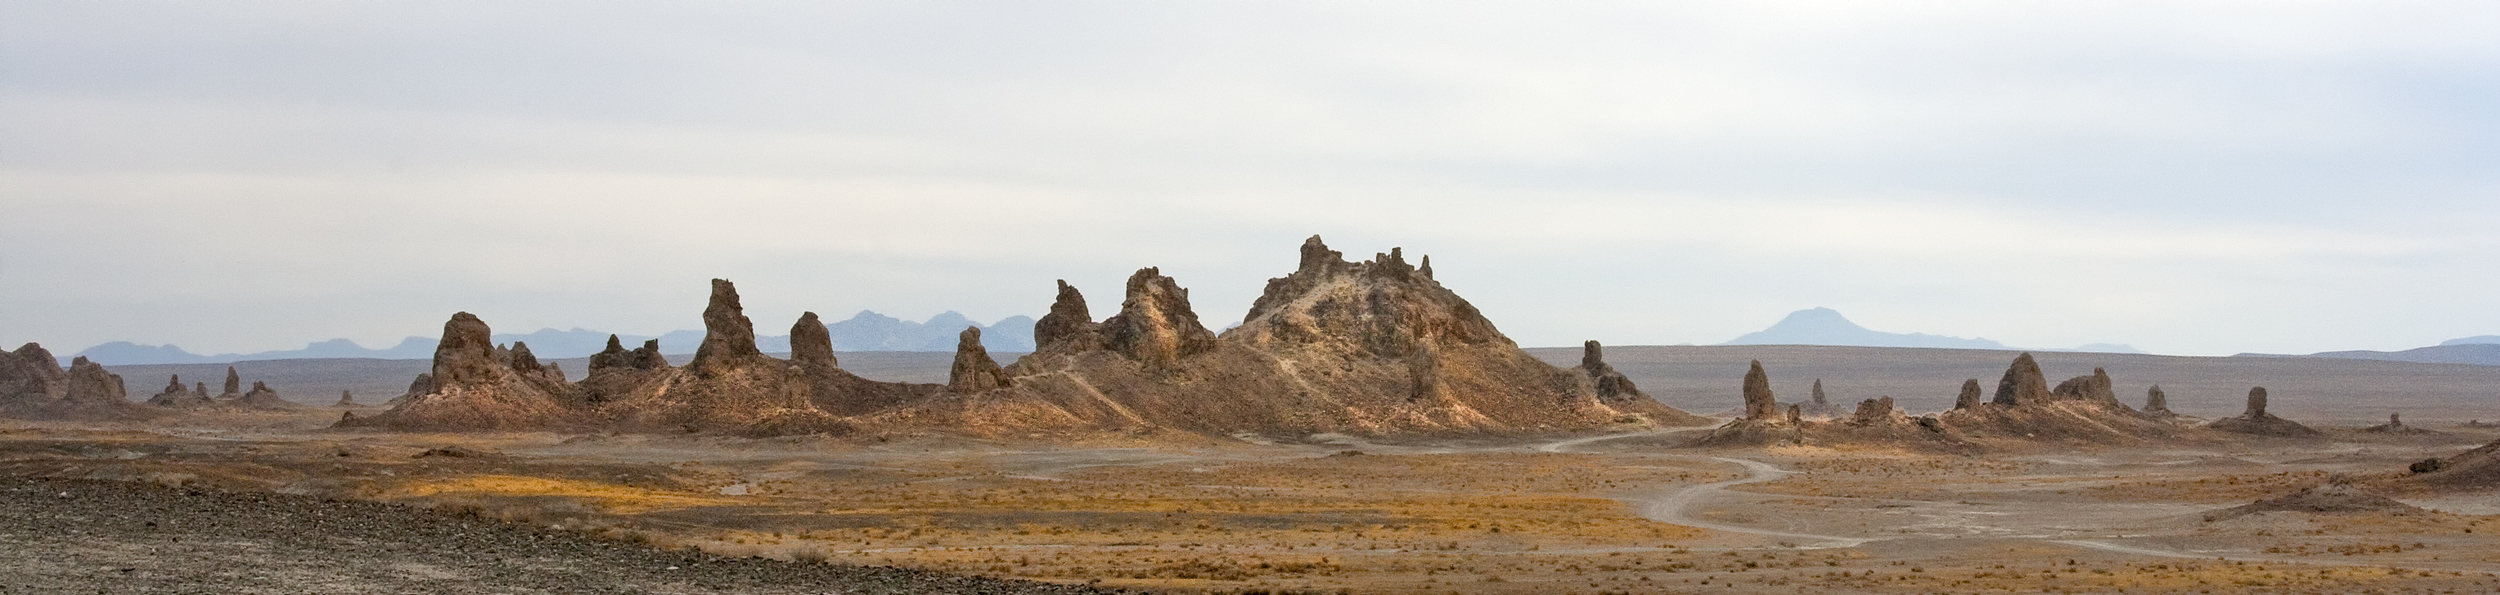 Ever changing California desert from Trona to Joshua ending at the Imperial dunes.